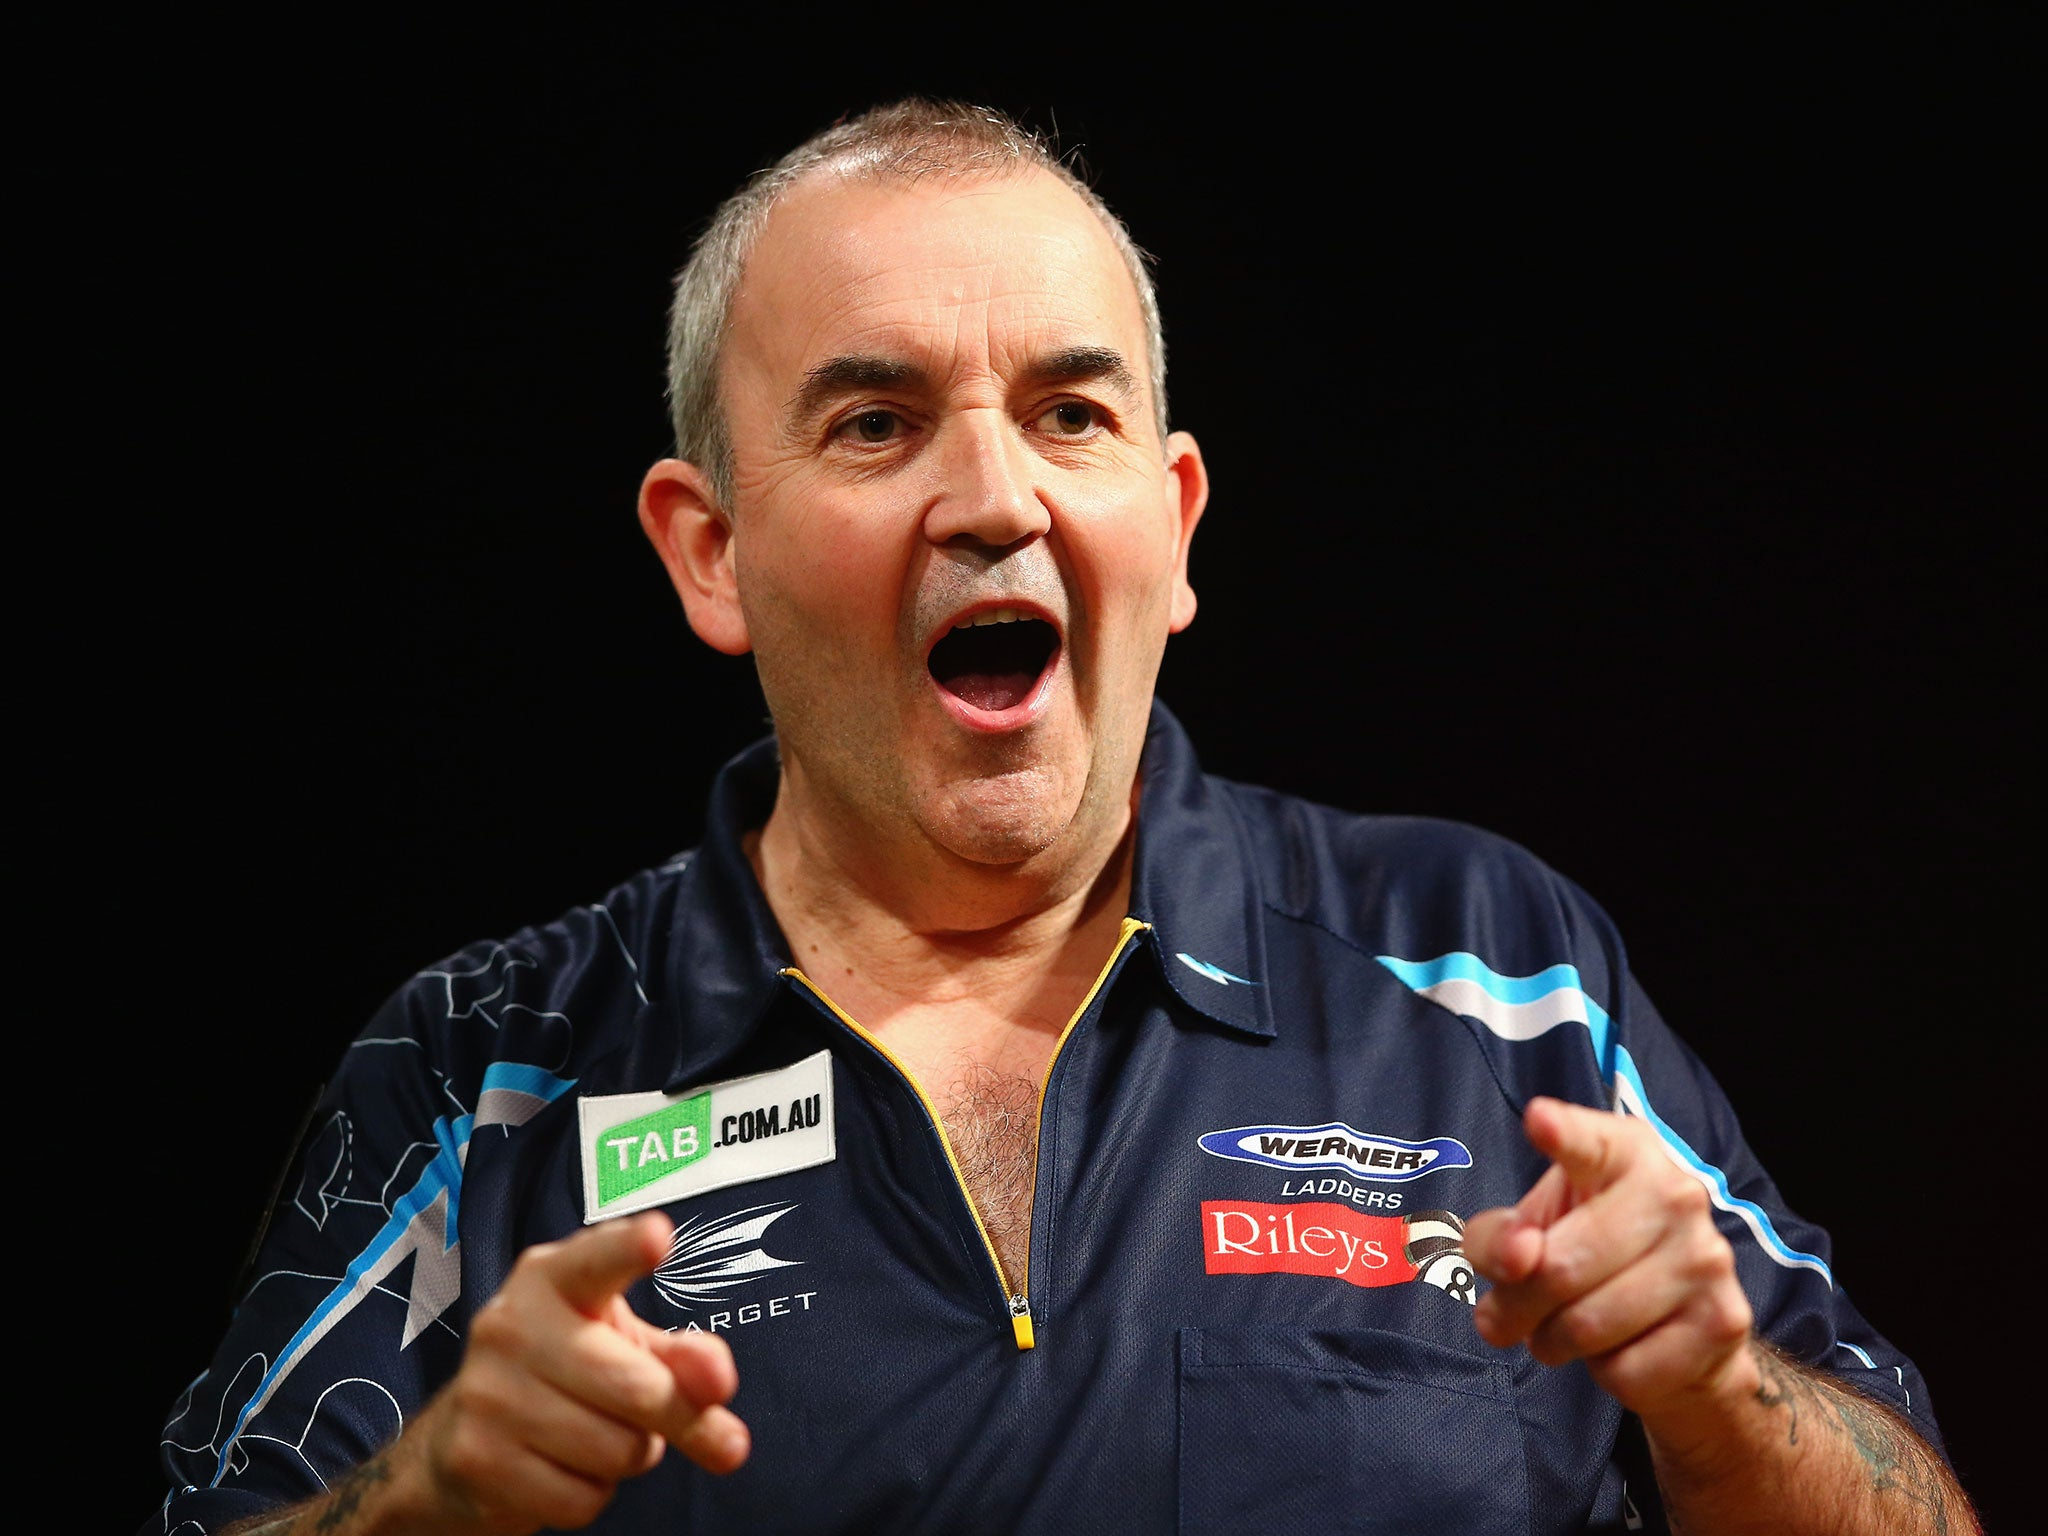 World Darts Championship 2014 Friday 19 December schedule: Phil Taylor vs ...